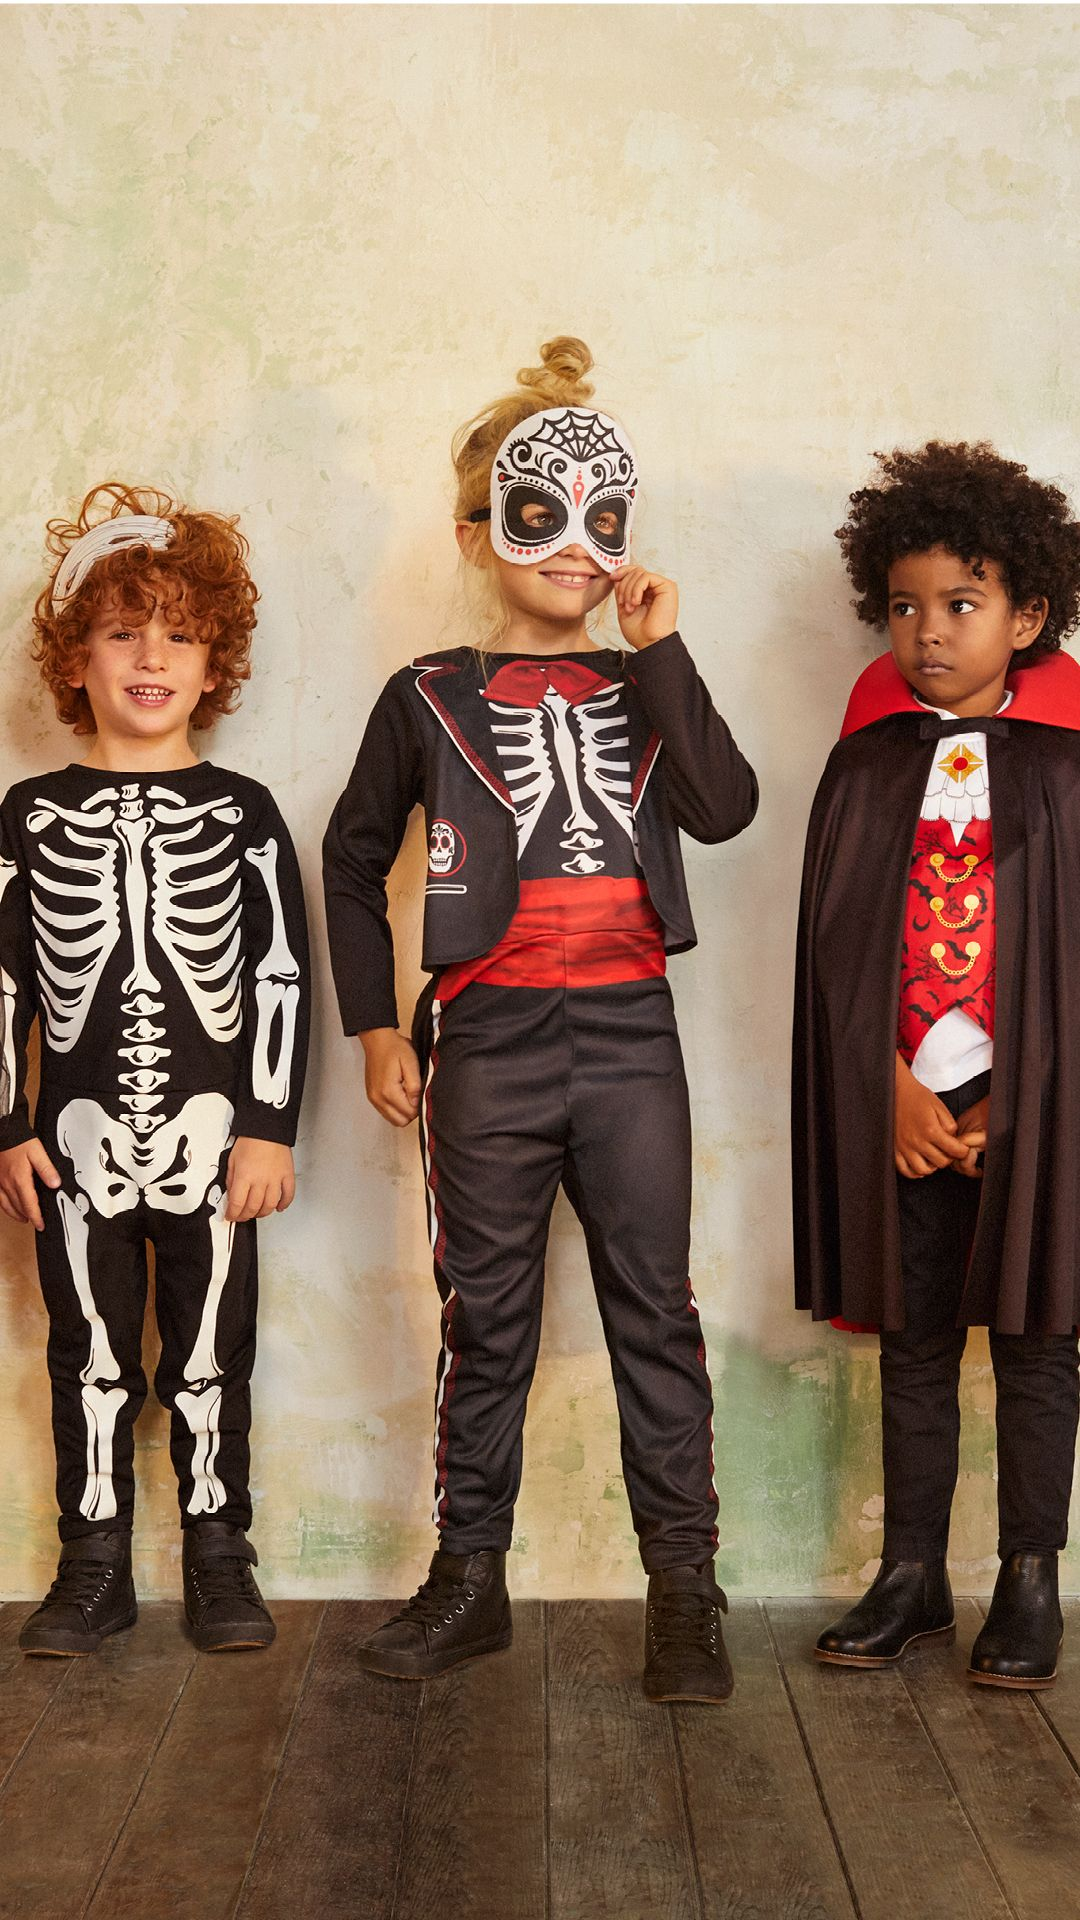 Tag Along For Spectacular Trick Or Treating With Funny